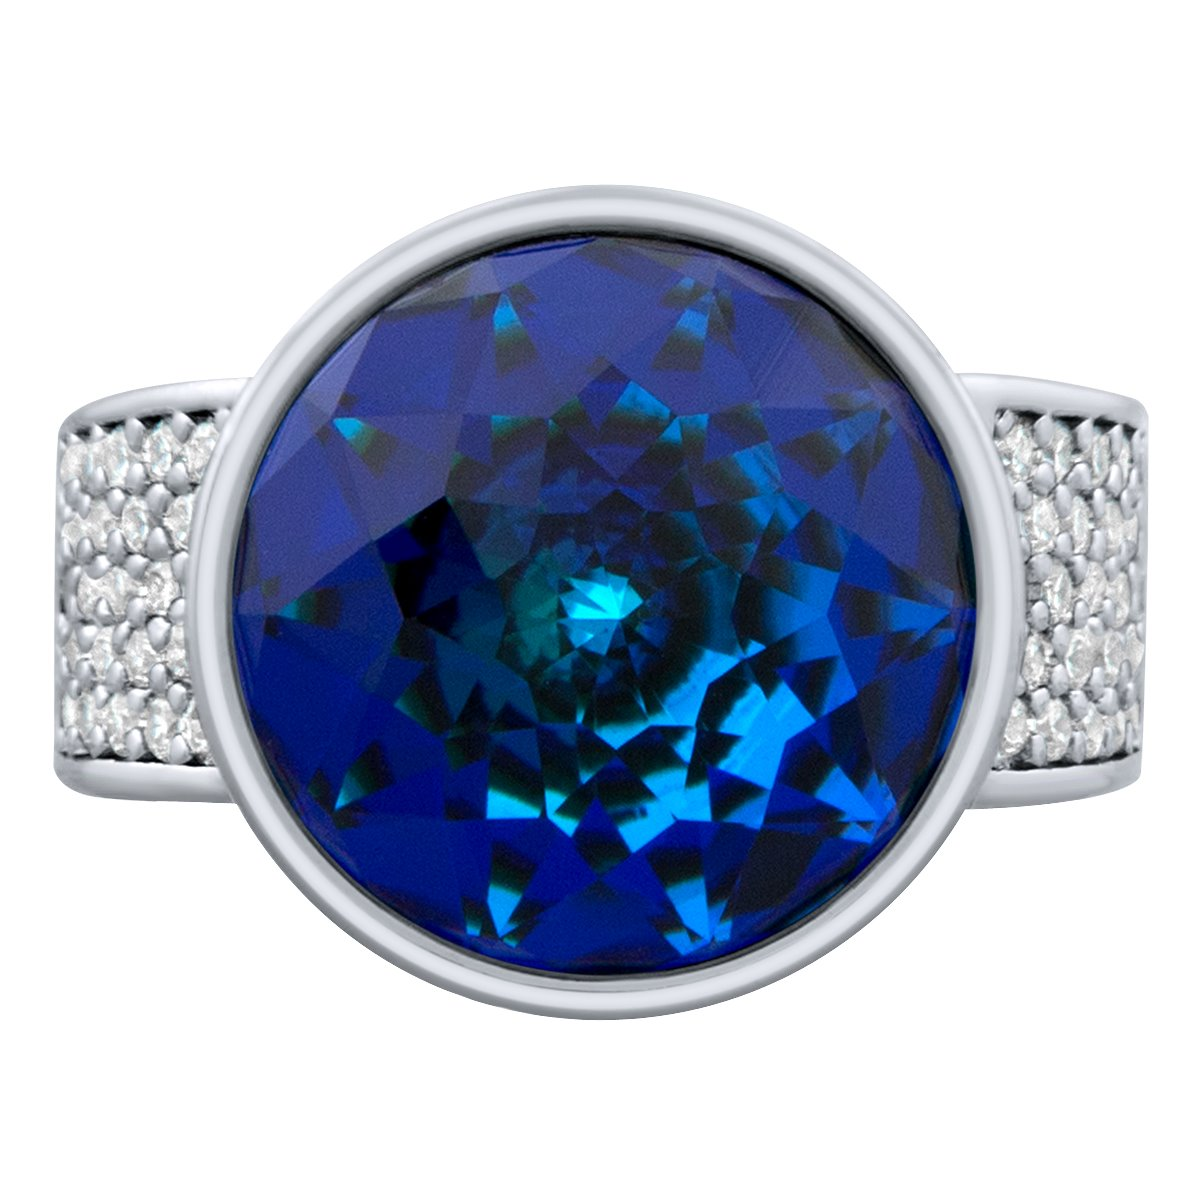 Elysees Ring Silver Bermuda Blue JOY OF SPARKLE FOREVER CRYSTALS